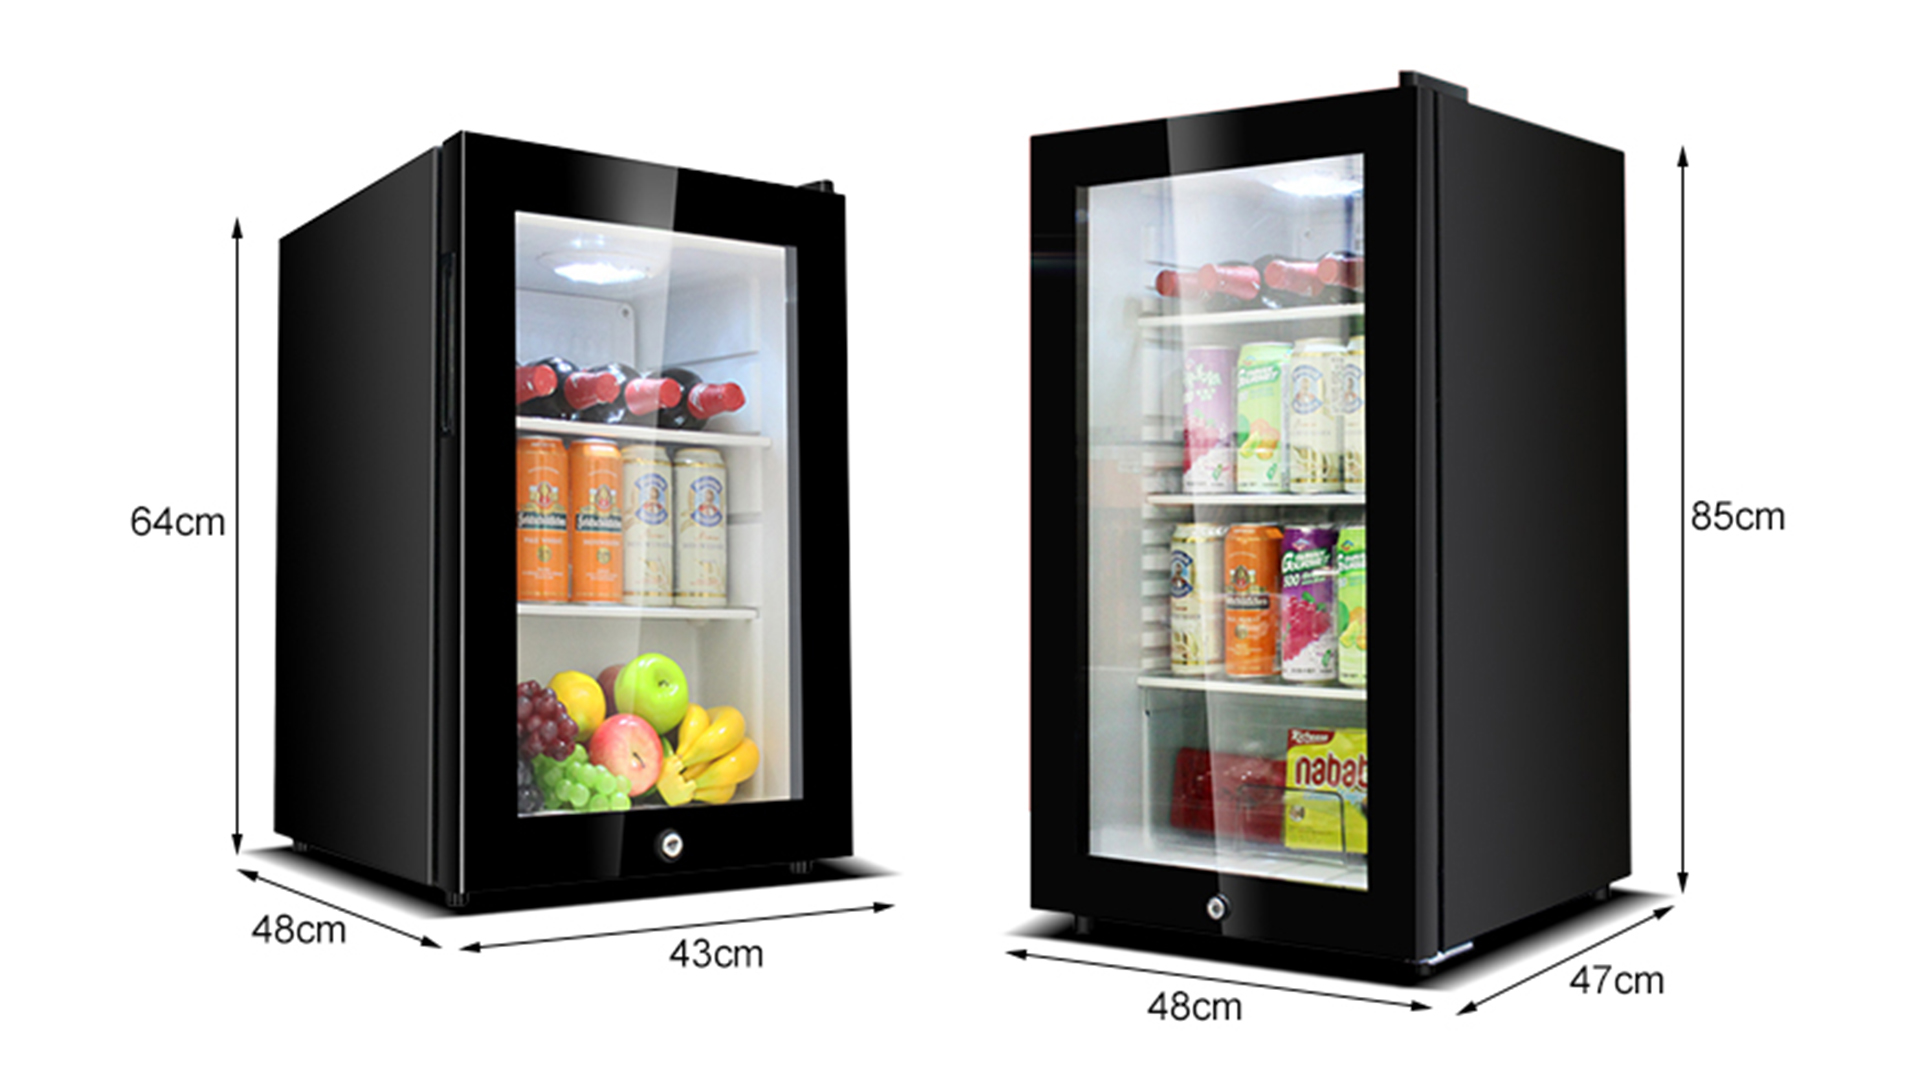 62L/95L Refrigerator Home Appliances Small Size Freezer / Mobile Home Fridge Freezer / Mini Bar Fridge with Glass Door